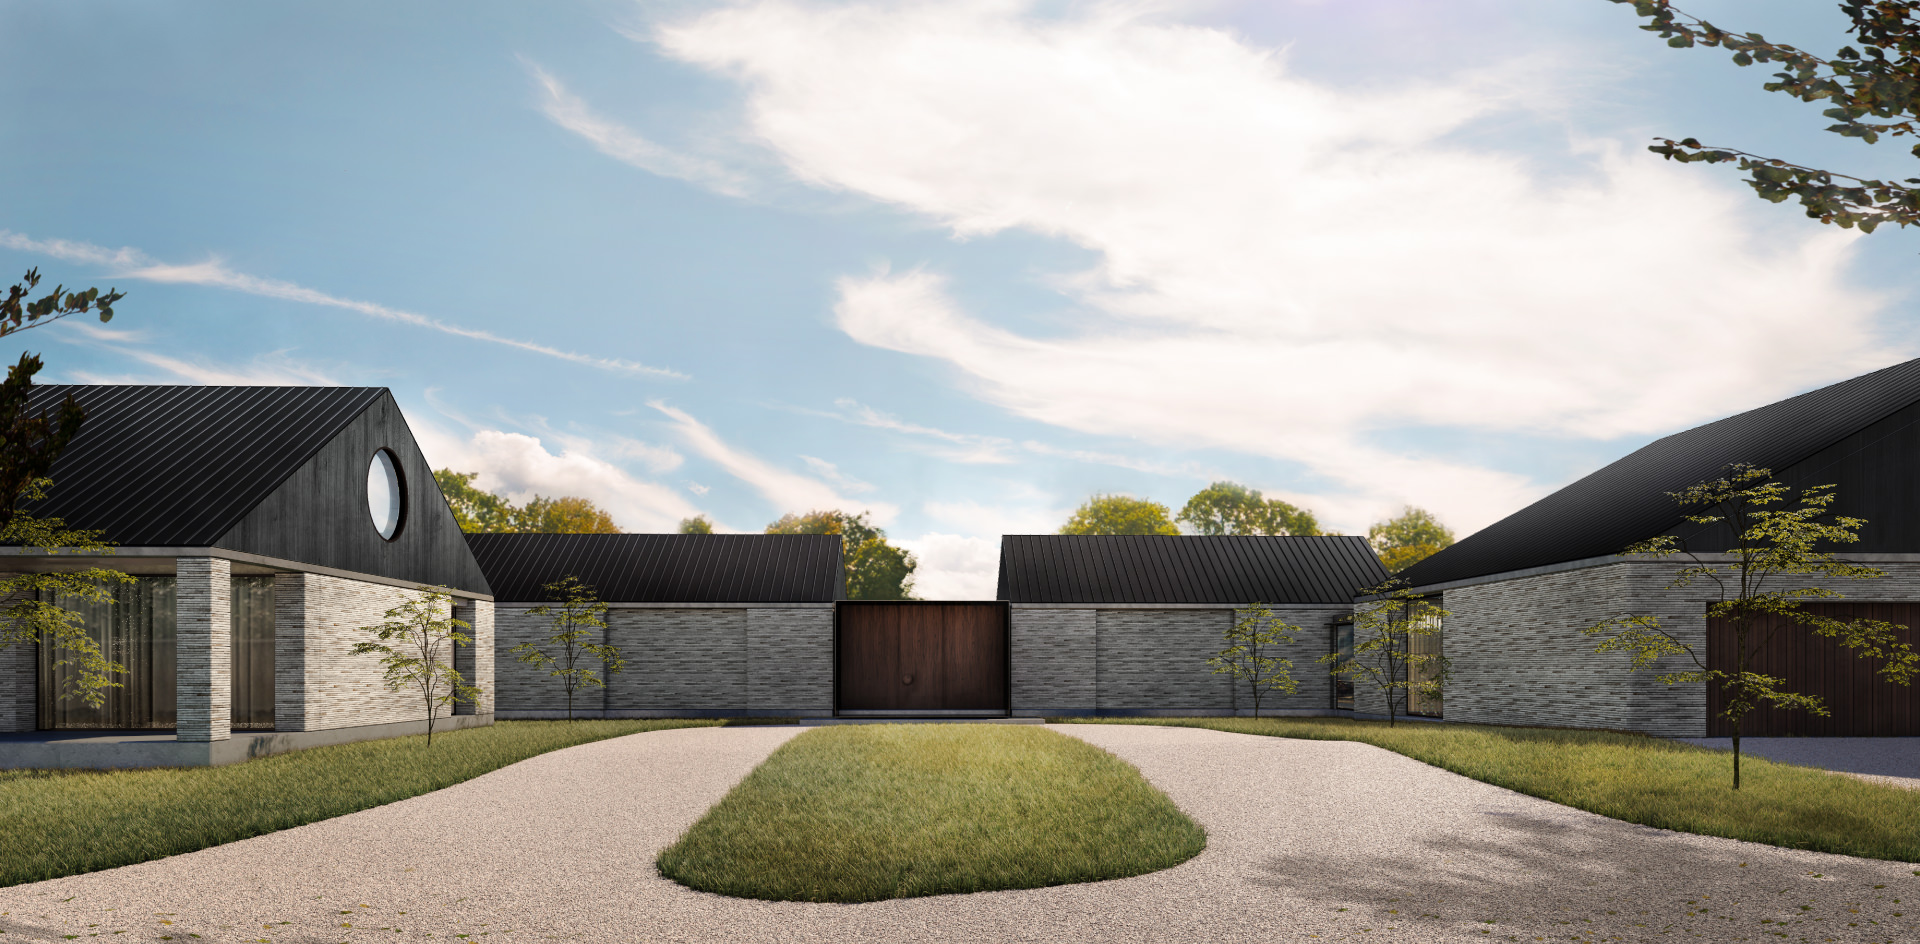 Cera Stribley Architecture Interior Design Country Residence exterior landscape